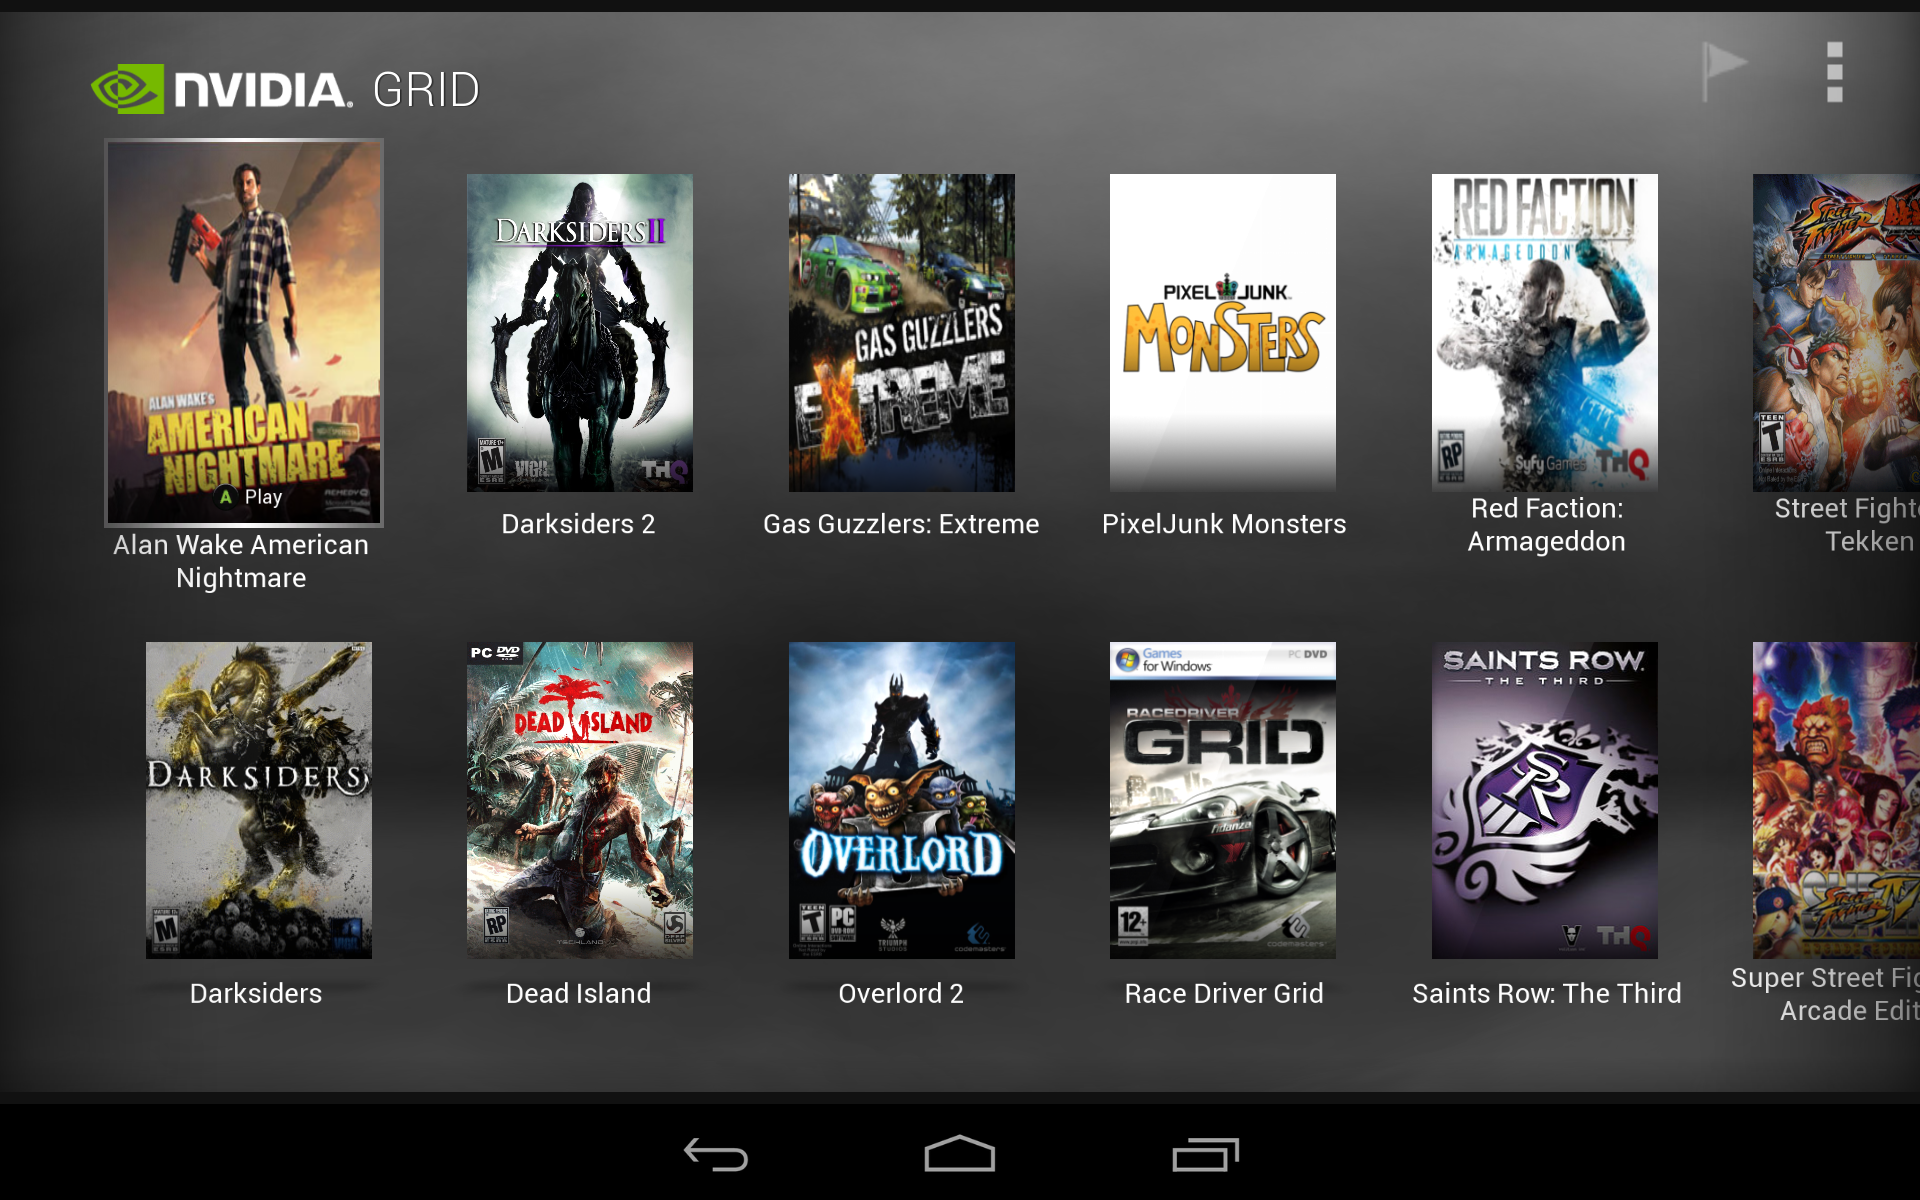 Software Cont'd: GameStream and GRID, Gaming Ecosystem - The